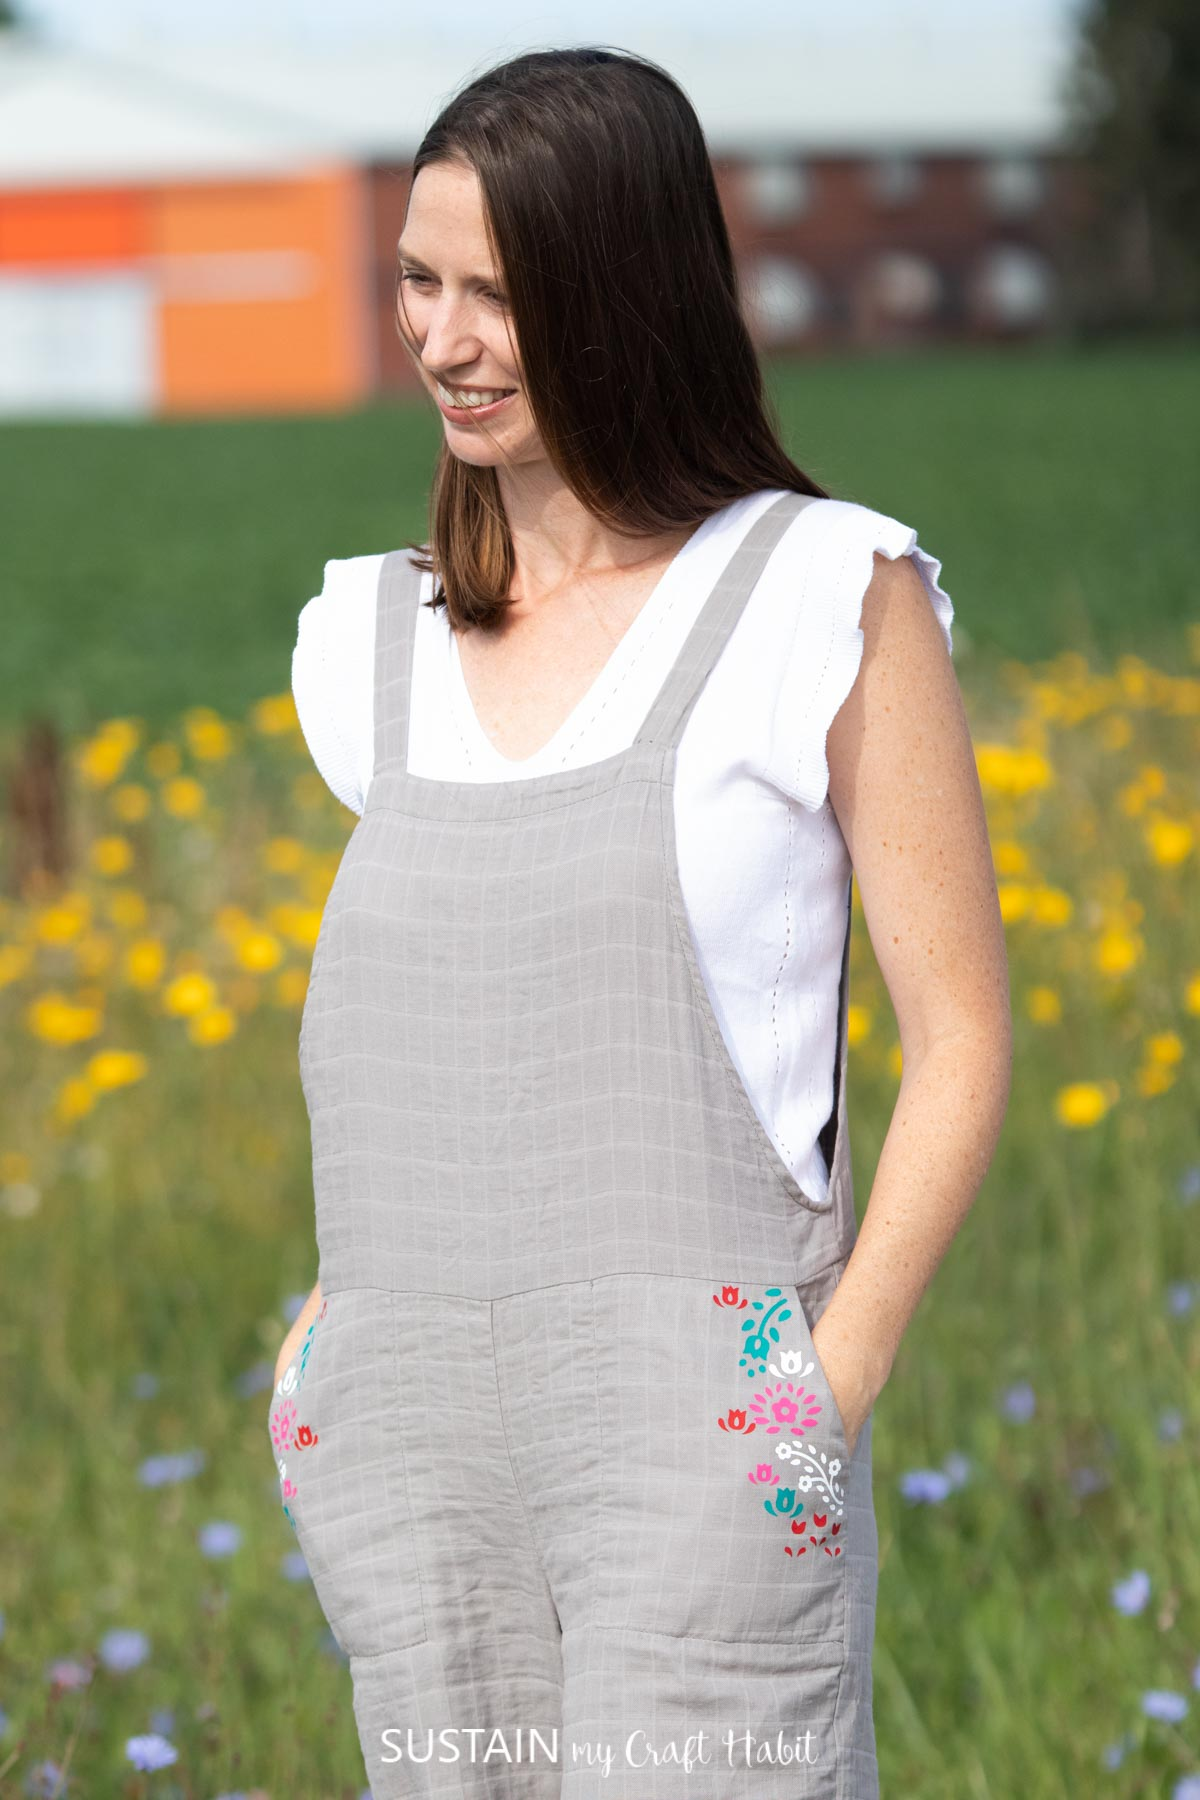 woman smiling with hands in her pockets